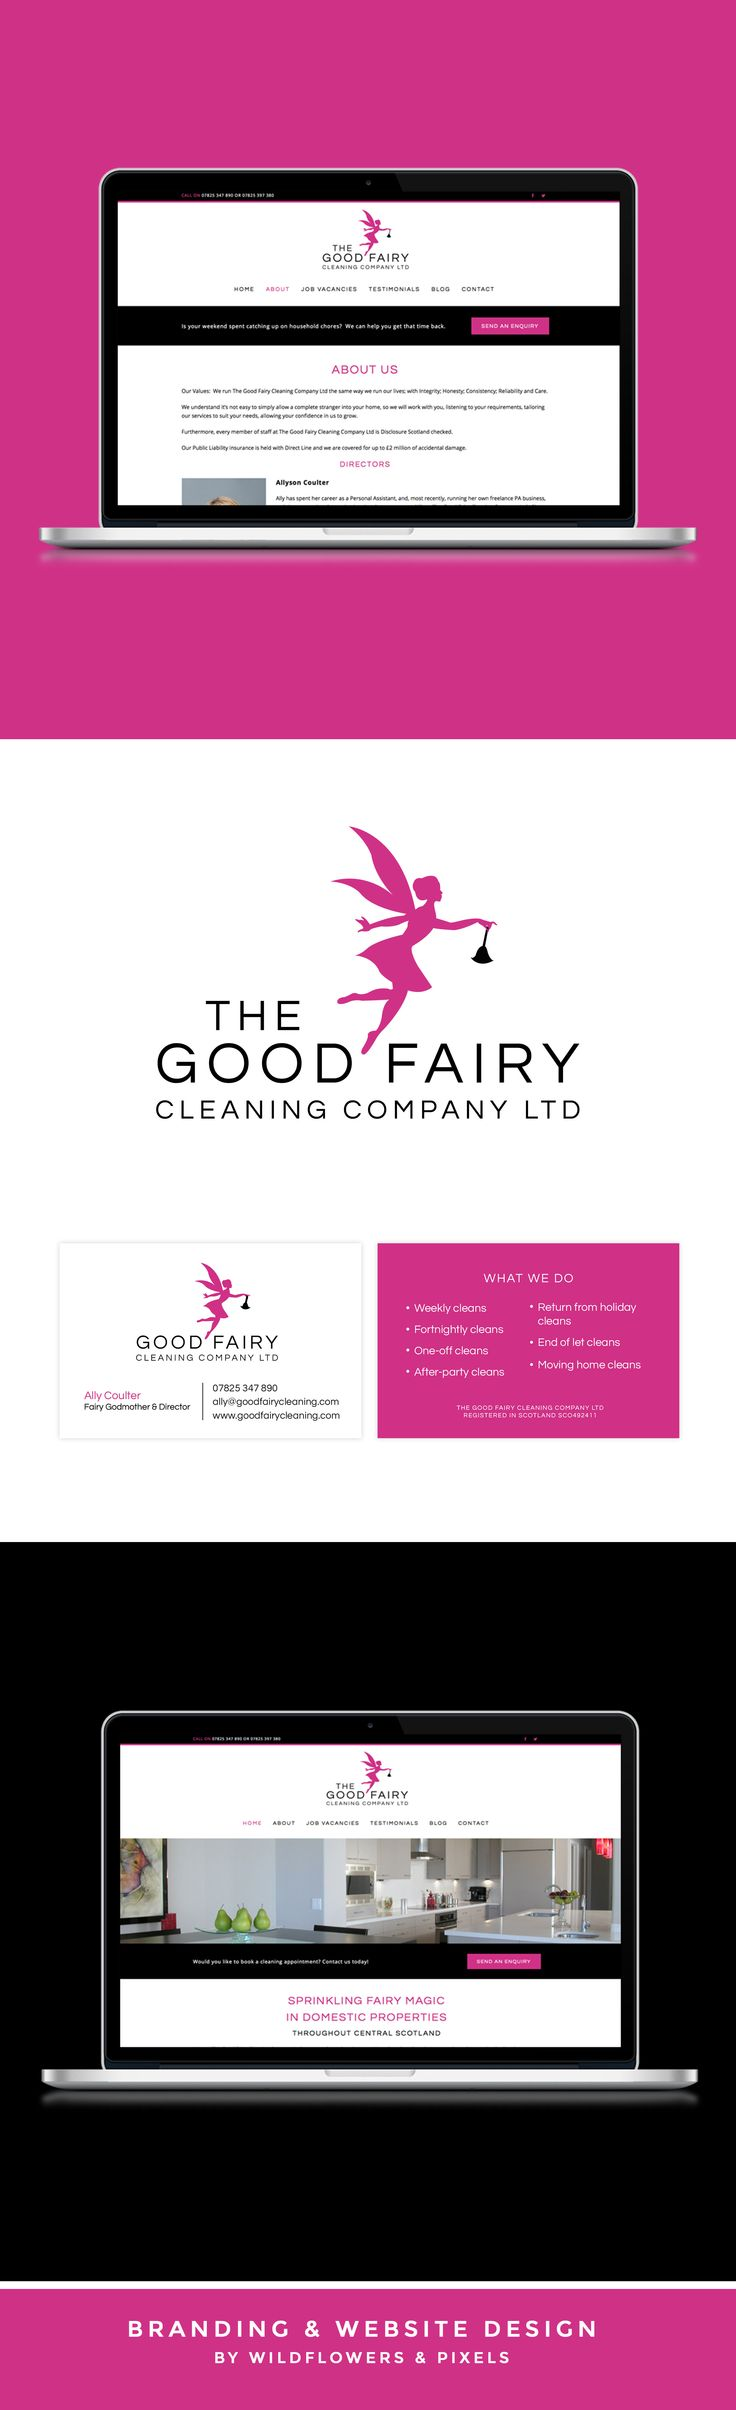 Branding & Website Design For The Good Fairy Cleaning Company ...